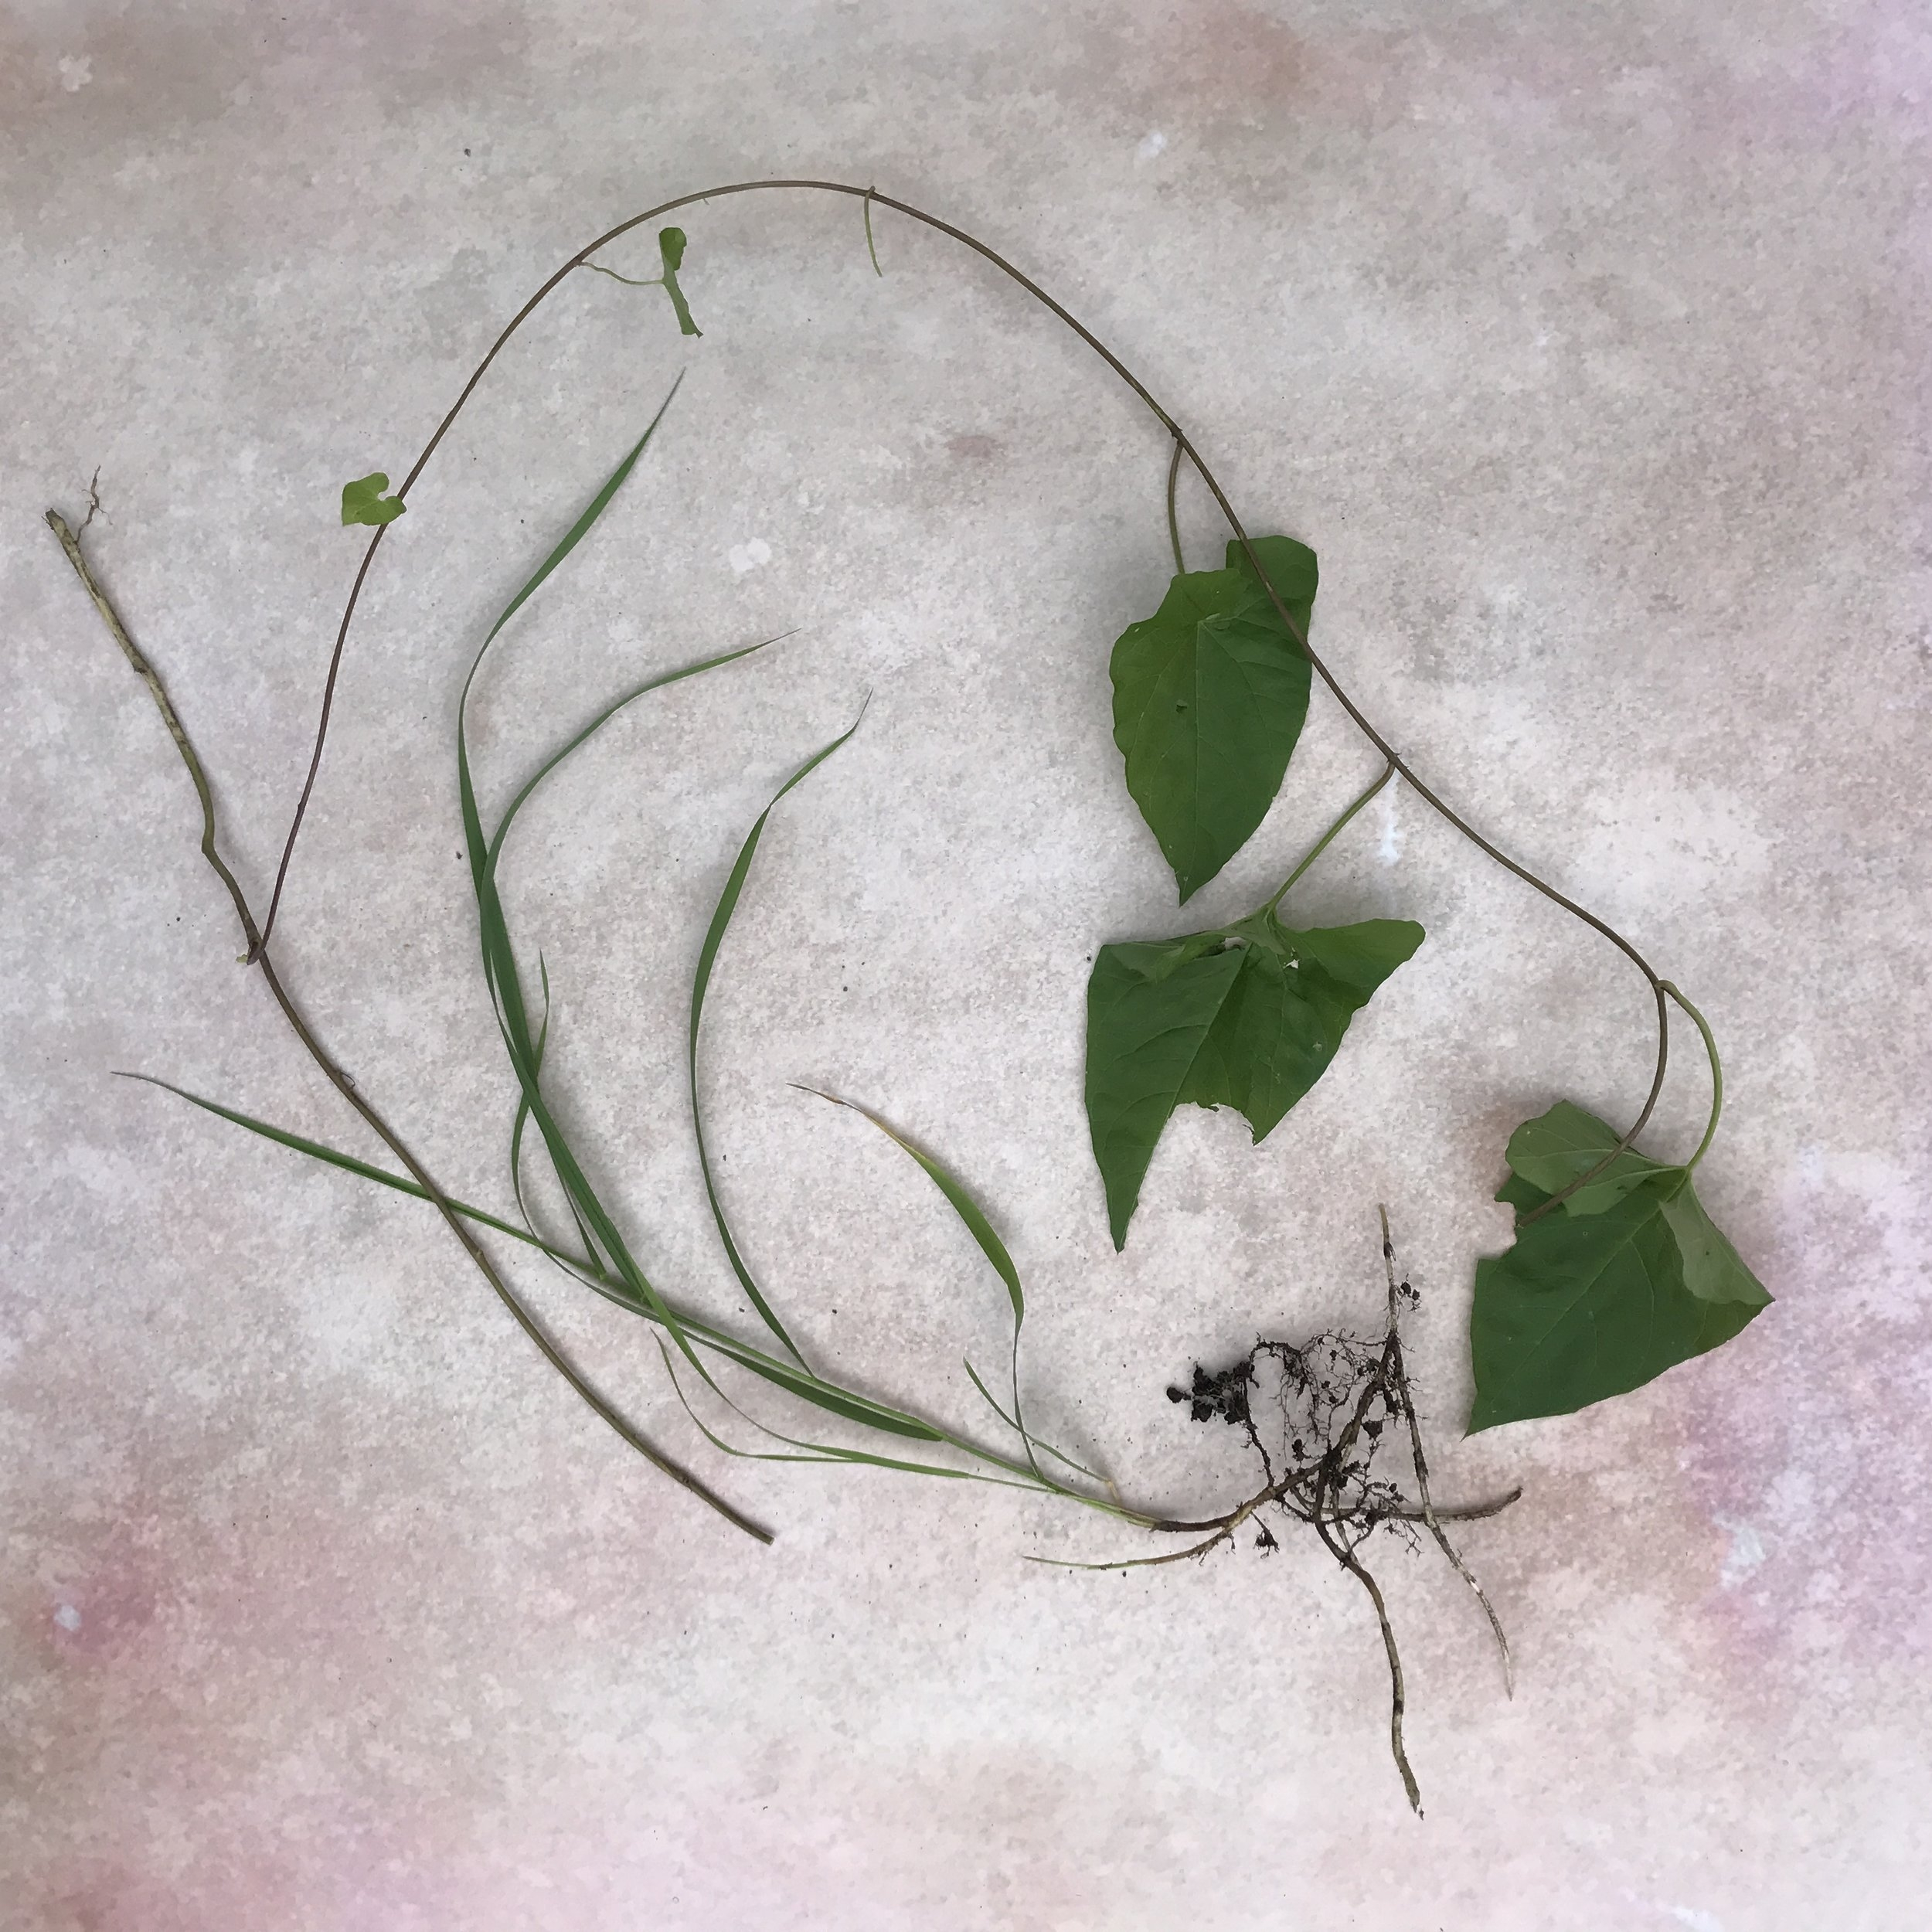 Bindweed, seen here with its best friend, couch grass